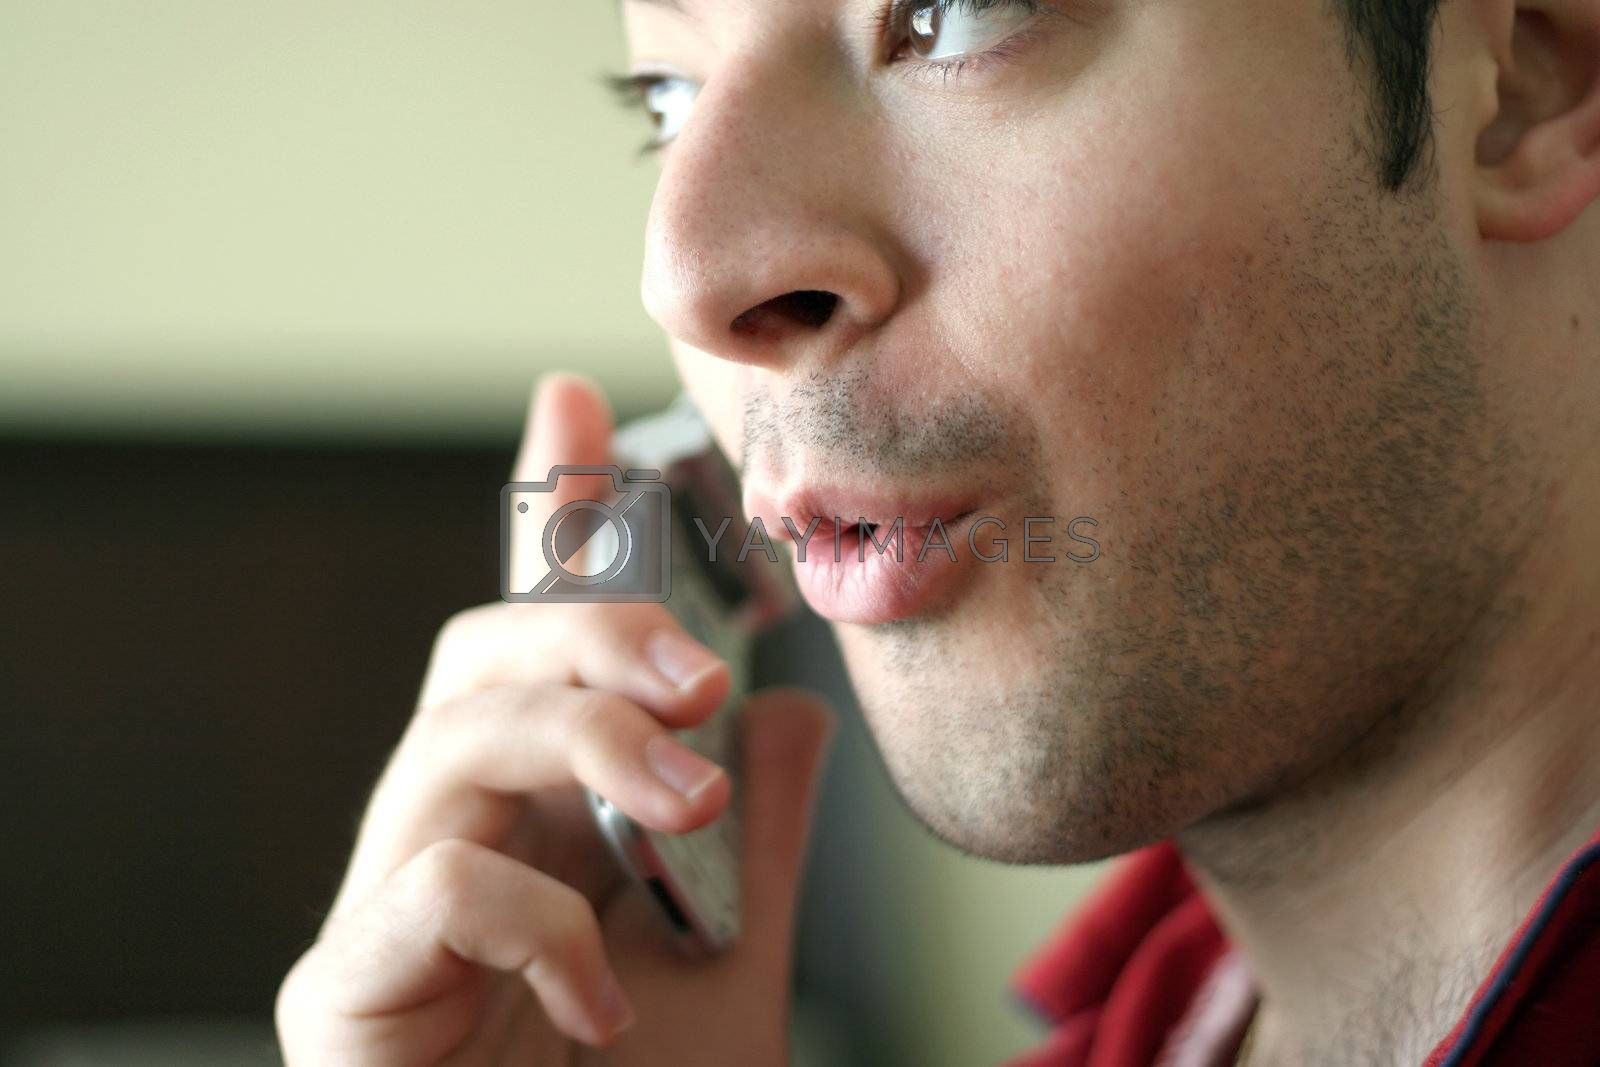 A man on his cell phone speaking excitedly or acting surprised about what he is hearing.